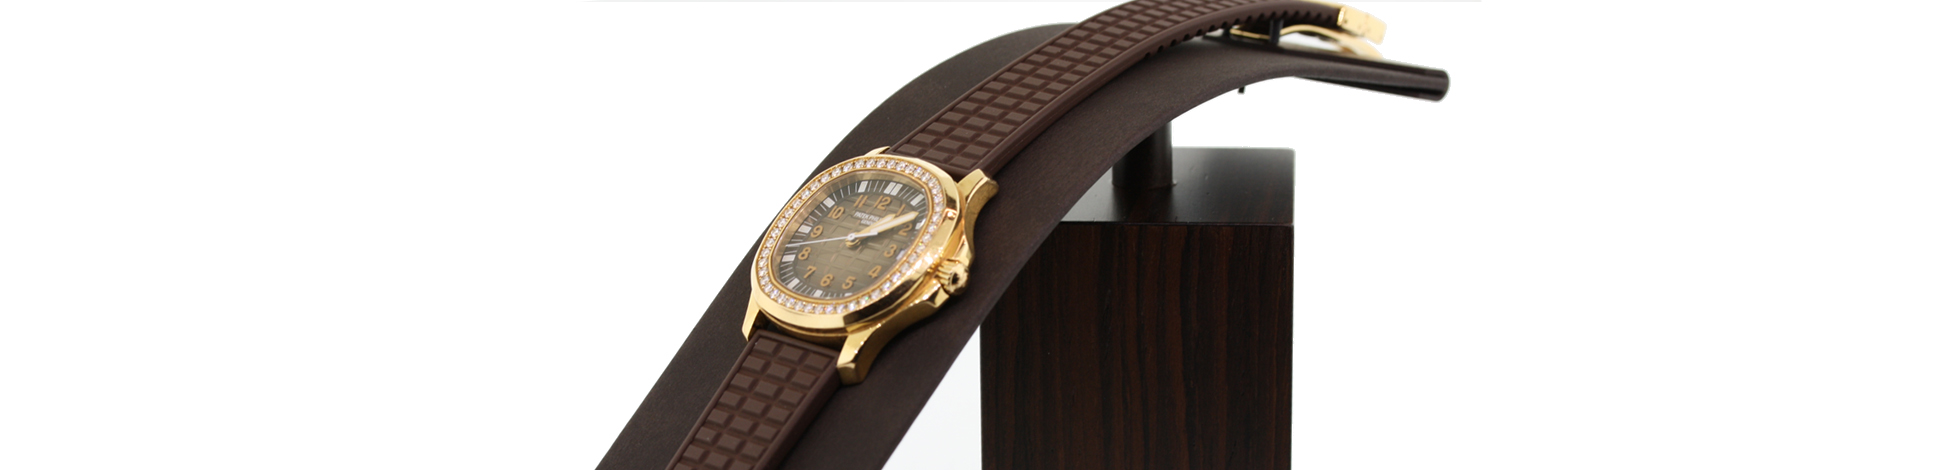 PRE-OWNED WATCHES - AUGUST 2020 NEWS article hero image